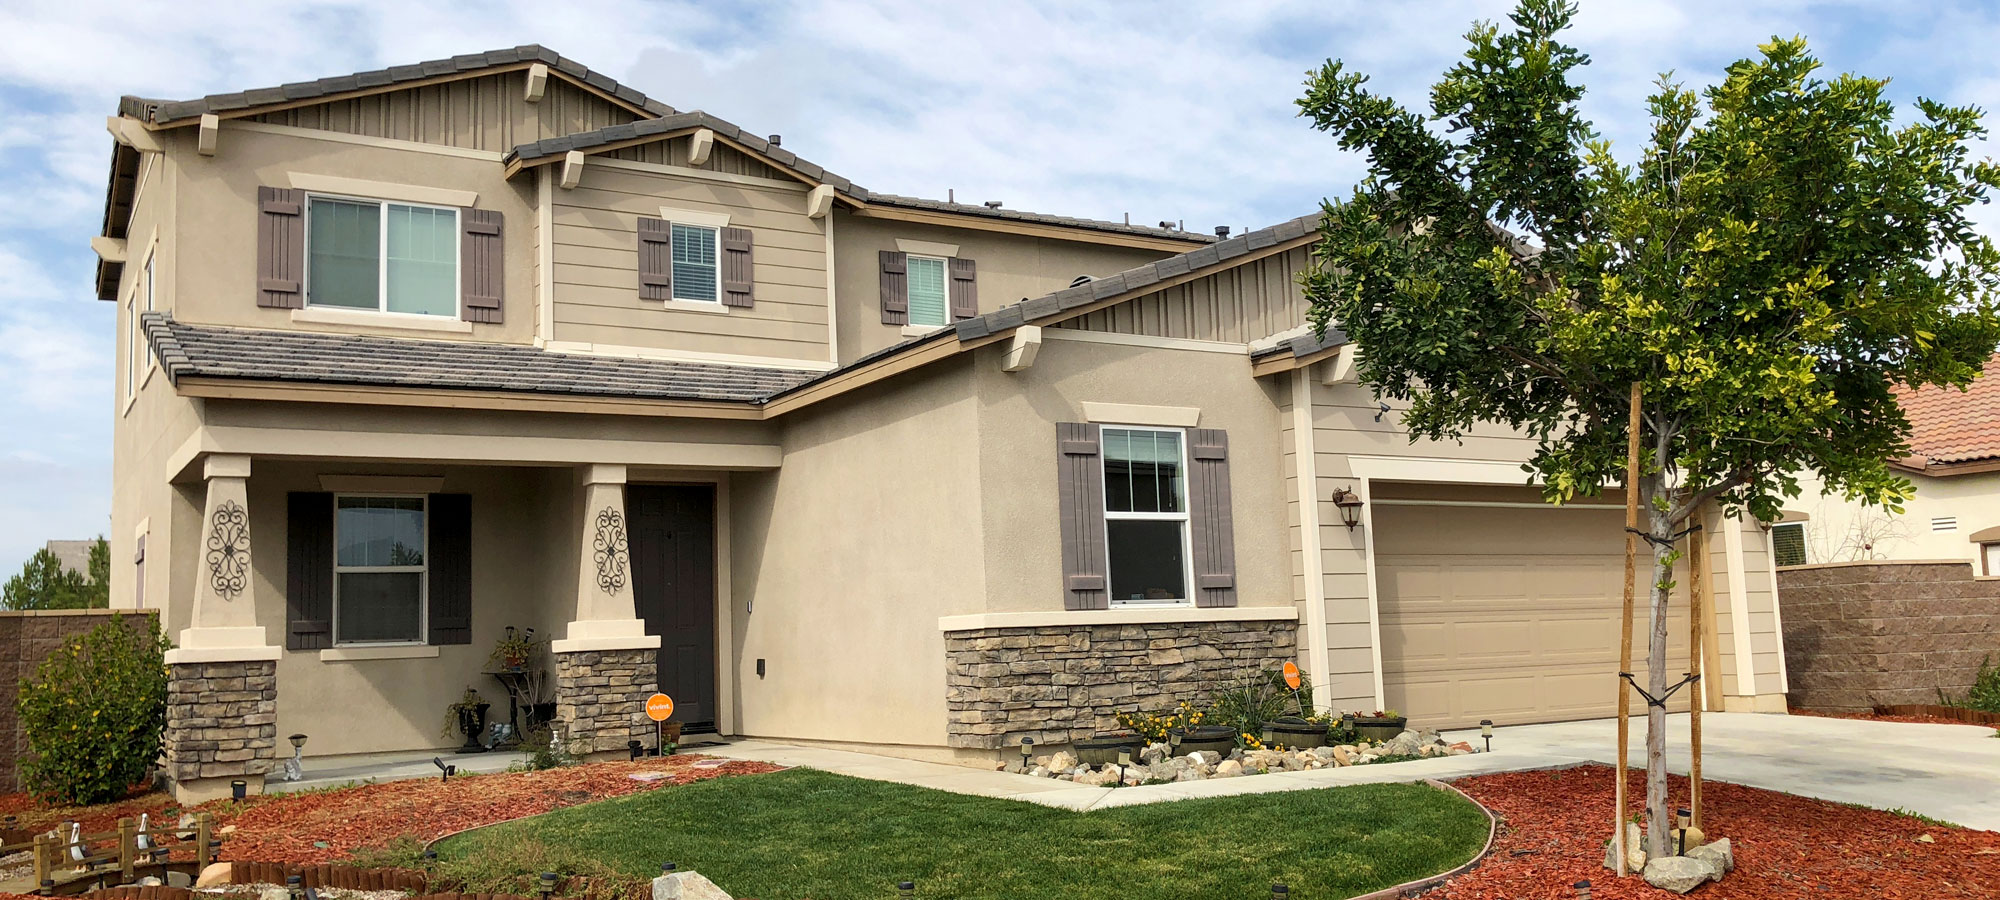 29295 Catchers Way, Lake Elsinore, CA 92530